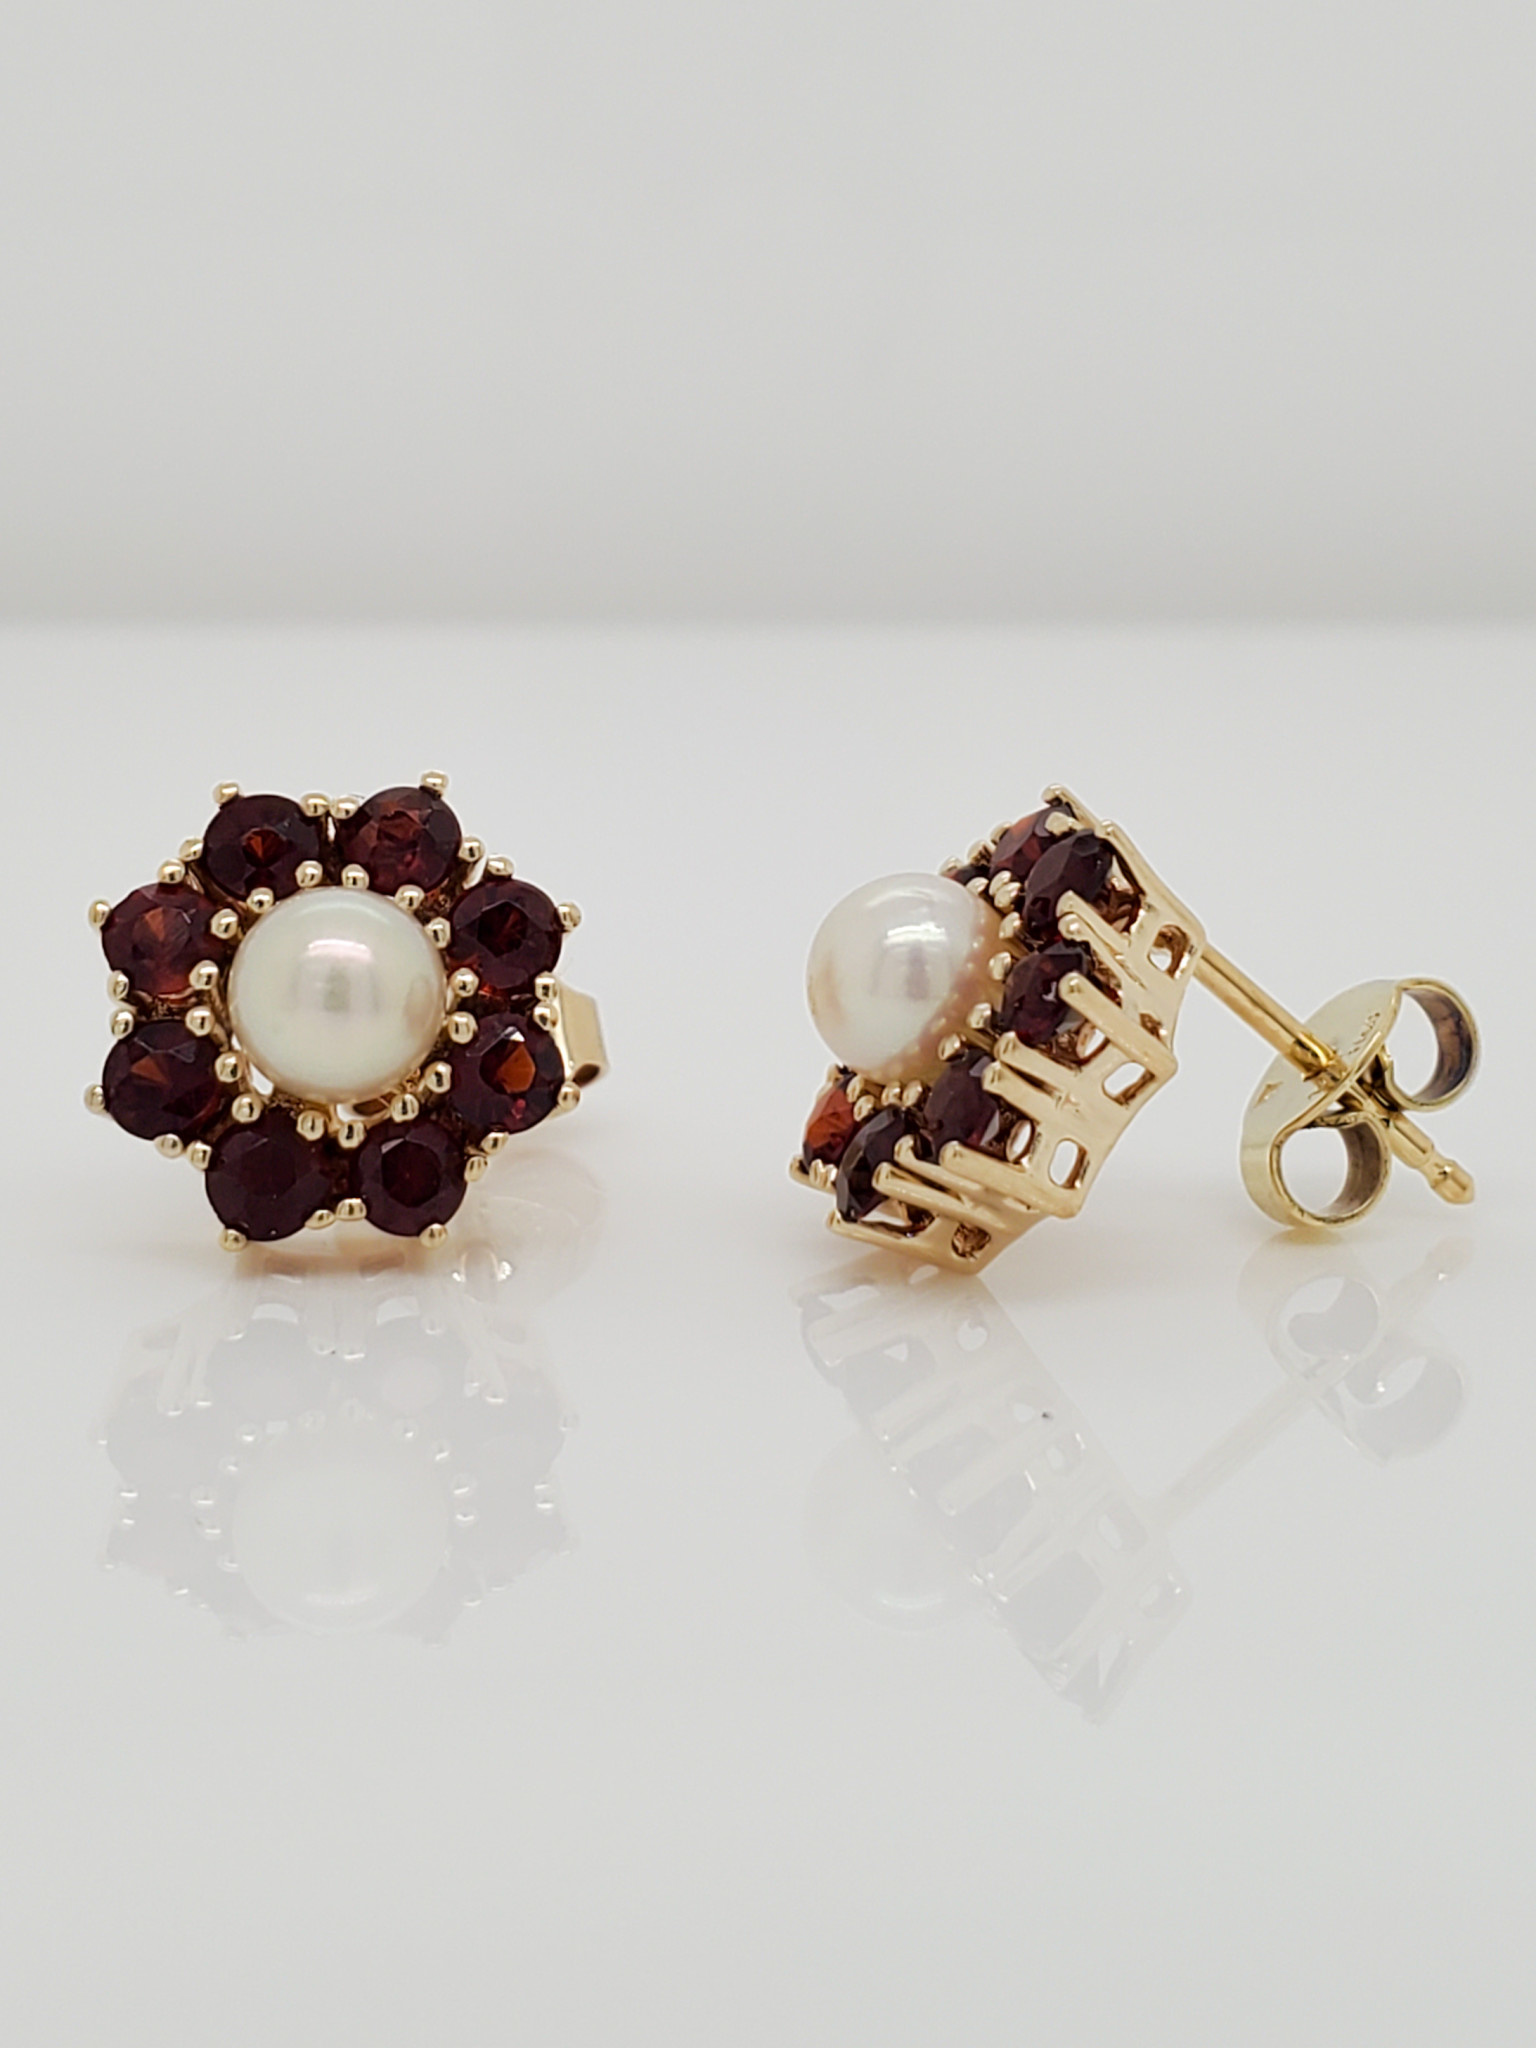 14KT Yellow Gold Estate Pearl and Garnet Stud Earrings